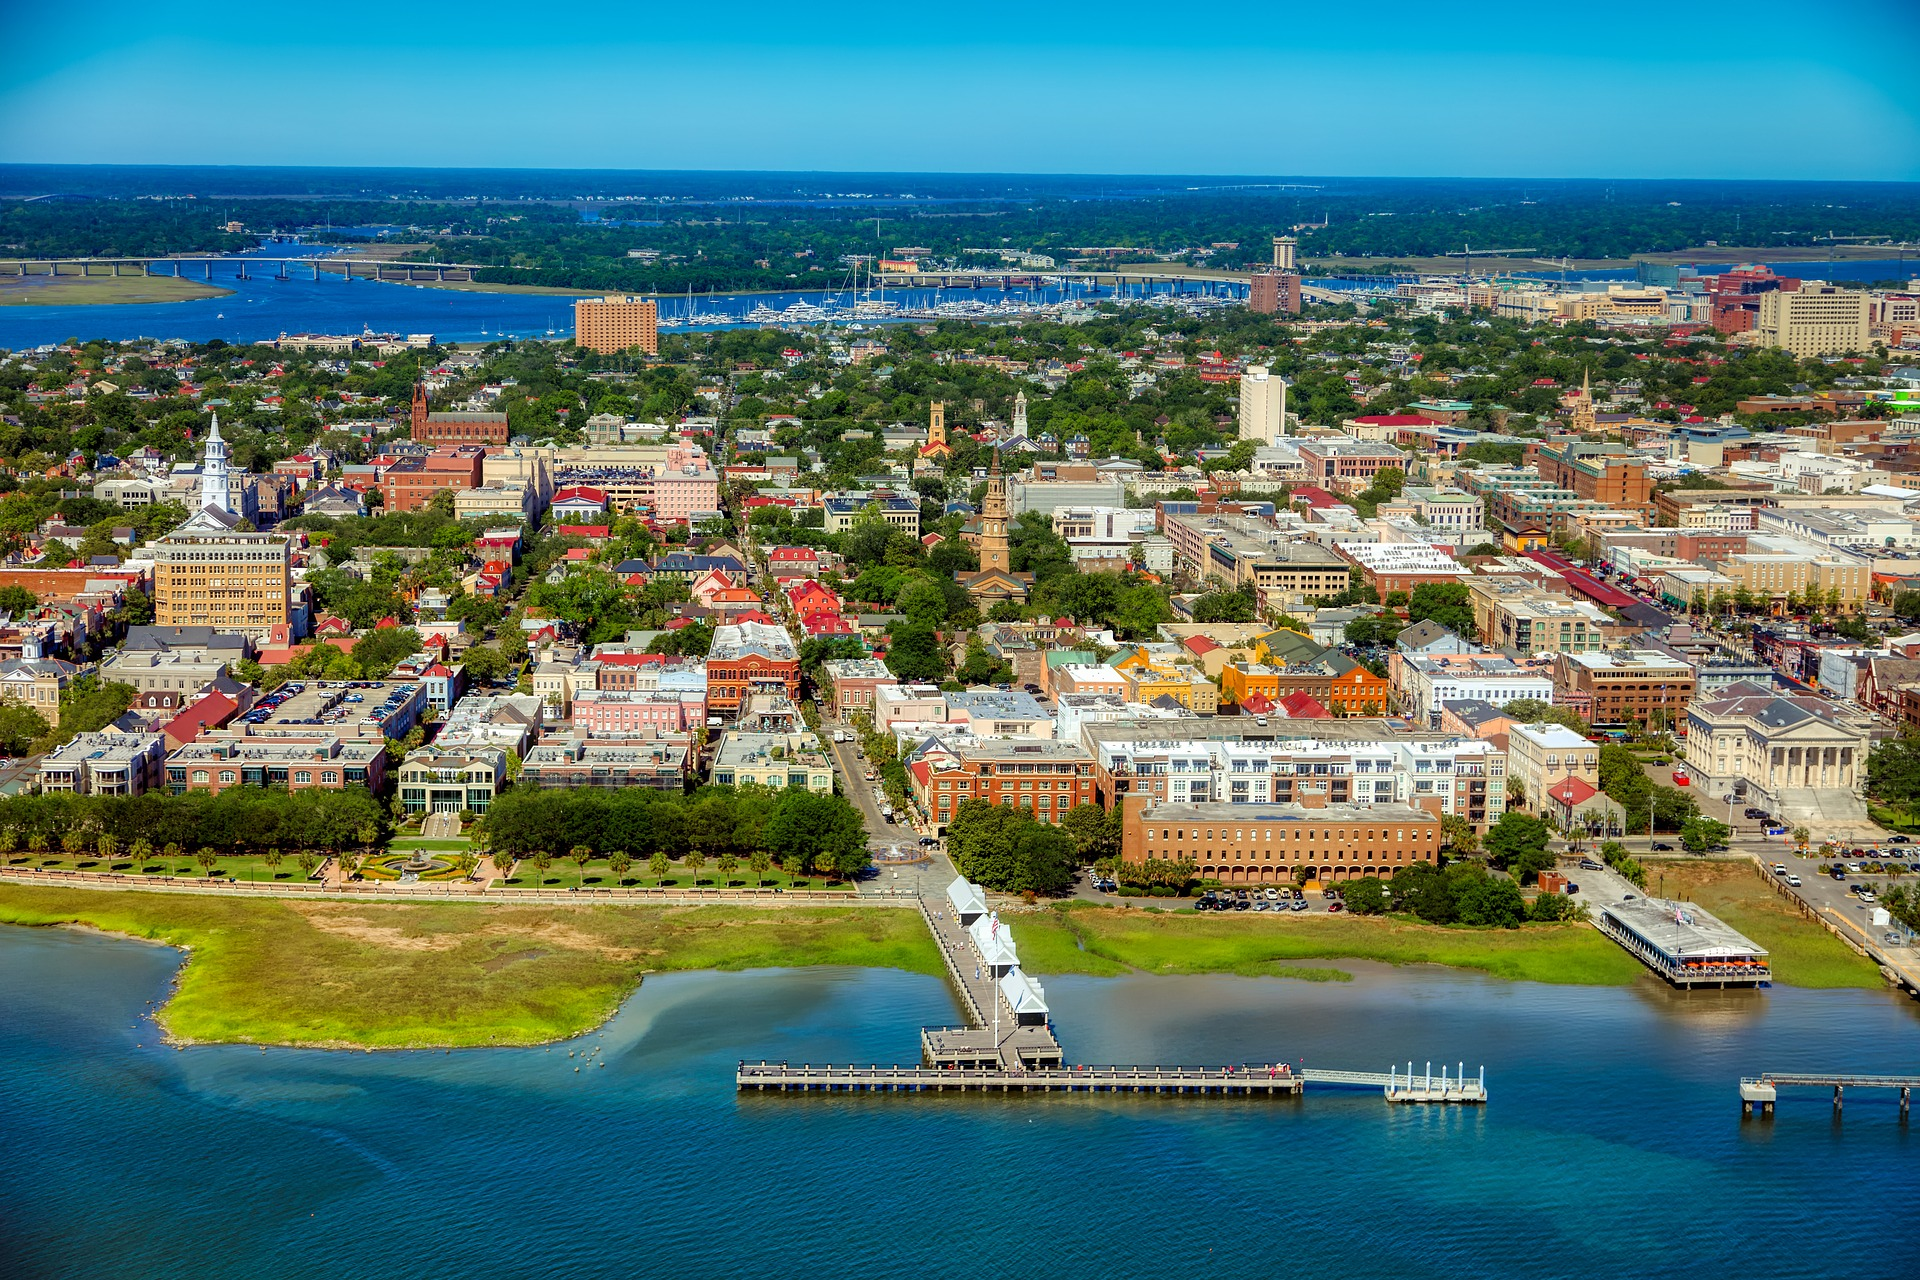 Coastal Charleston is a historic city, defined by pastel-colored houses, Old South plantations, and Fort Sumter, where the Civil War's opening shots were fired.